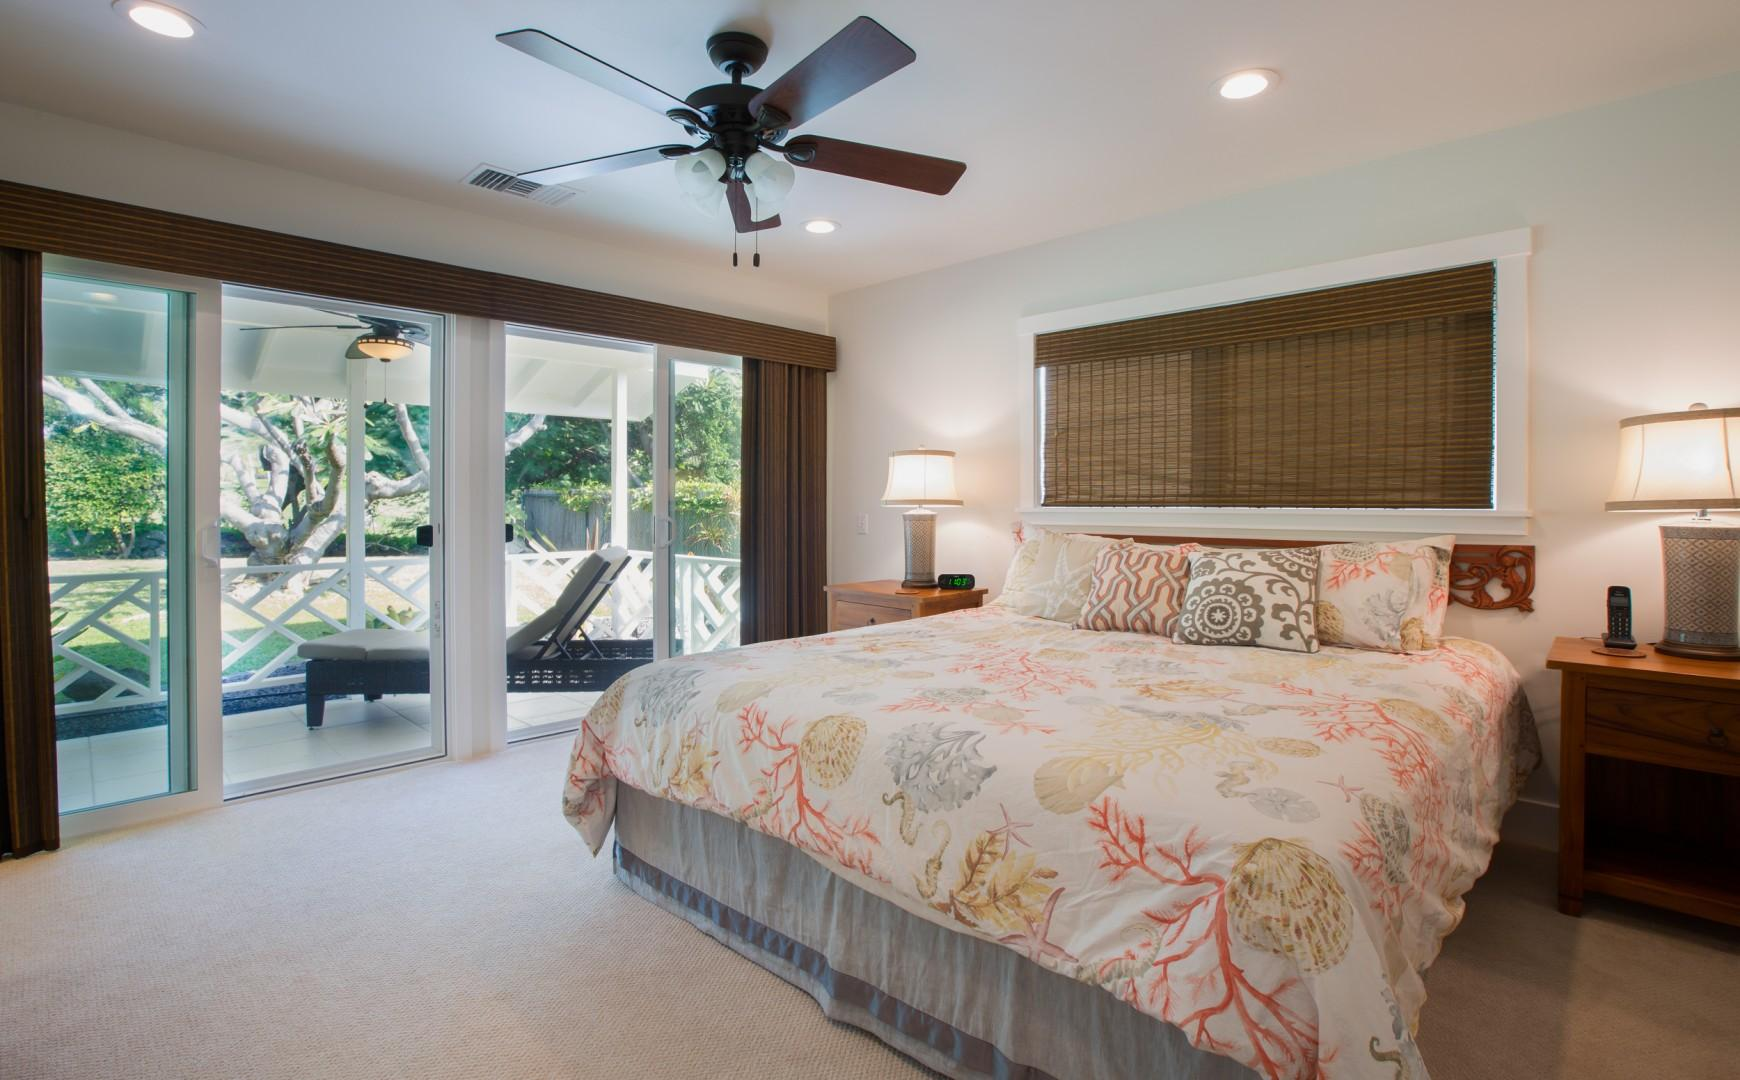 Master bedroom with lanai access.